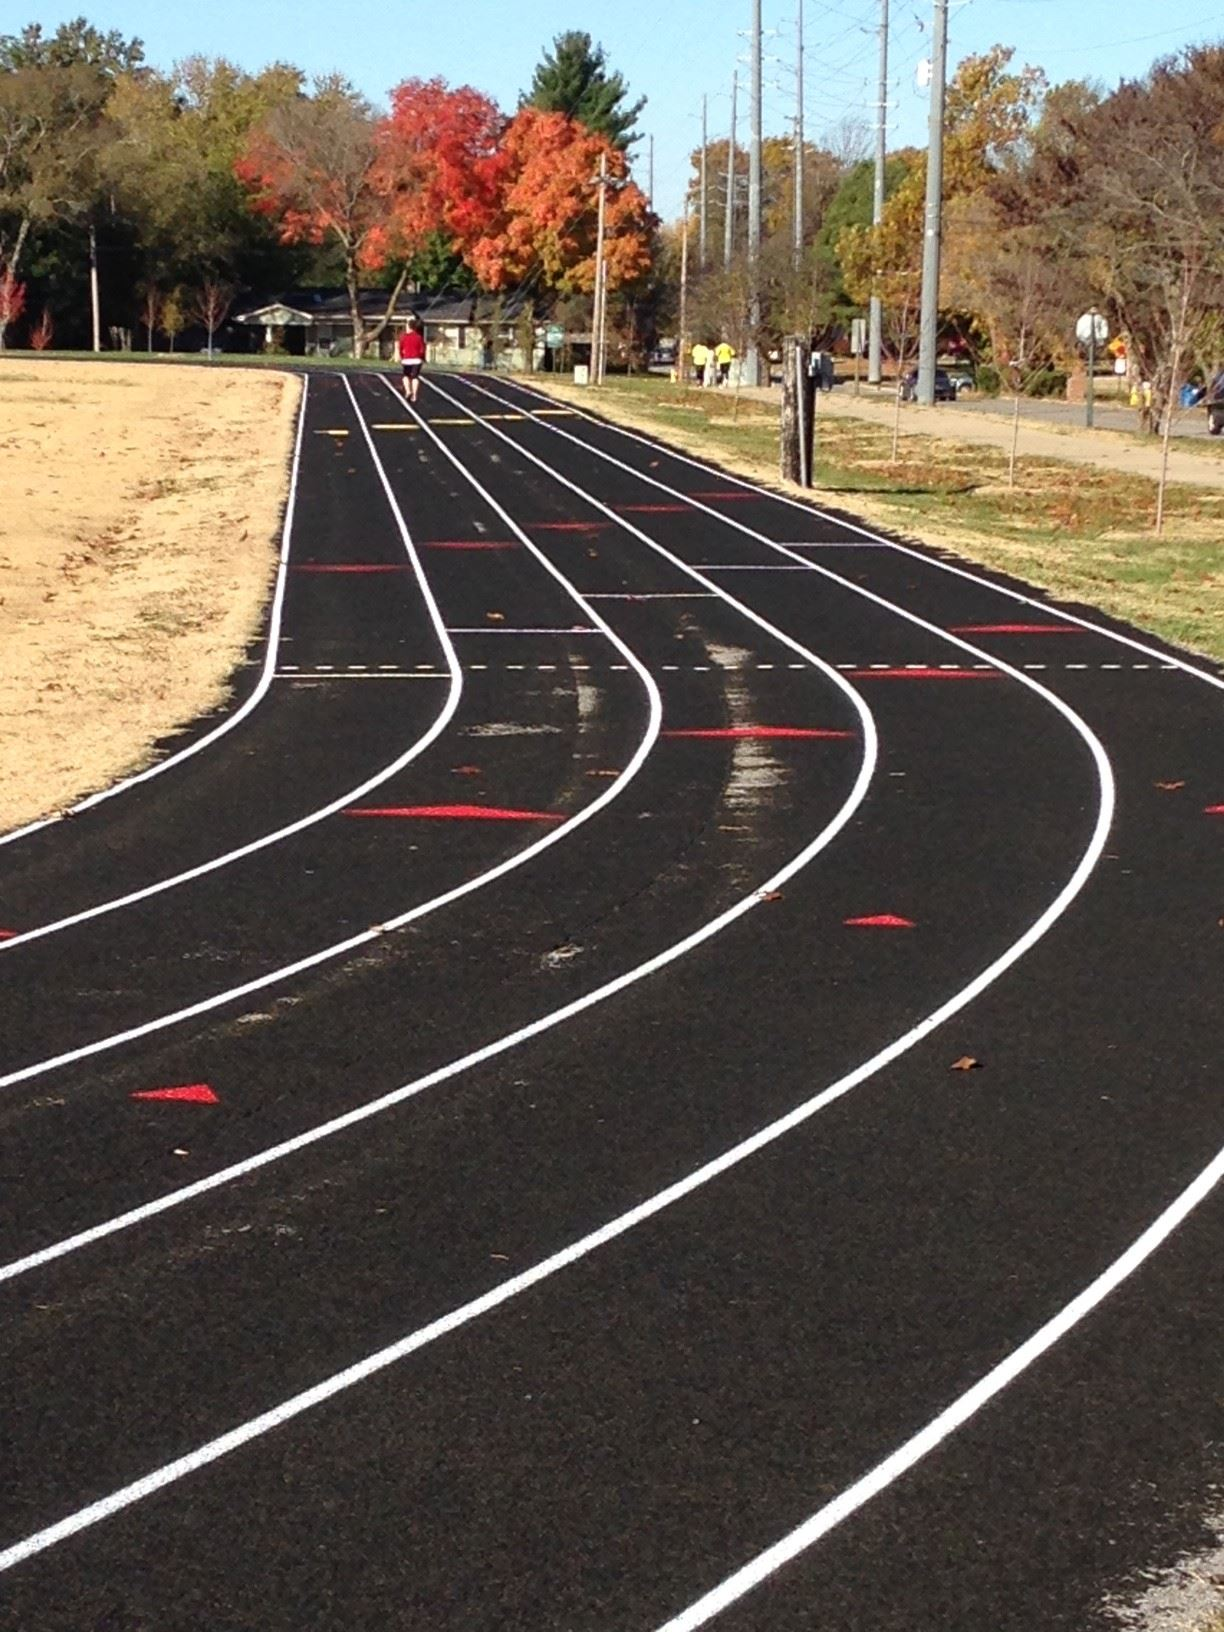 Old Tiger Stadium Image of track with one runner